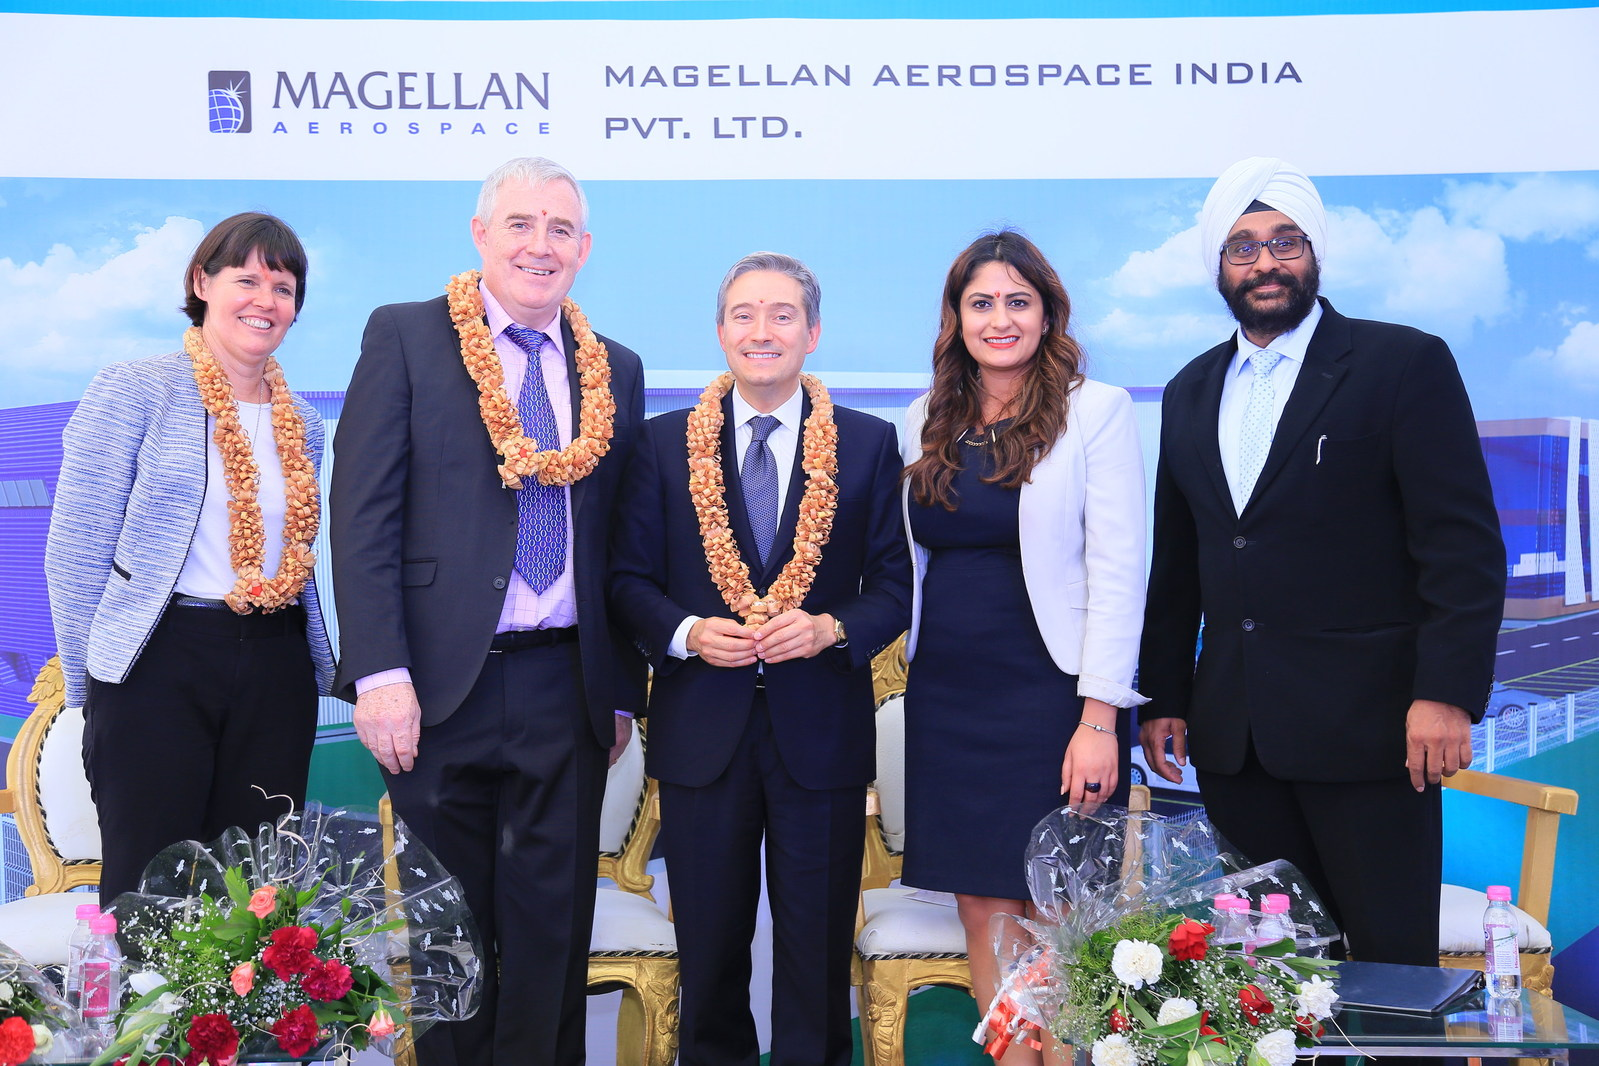 Minister of International Trade, Francois-Philippe Champagne, poses with Magellan executive team Haydn Martin, Jasdeep Bevli and Jennifer Daubeny (consul general, Bengaluru) at the groundbreaking ceremony for Magellan Aerospace's new manufacturing and assembly facility in Devanahalli, India. Magellan Aerospace Photo